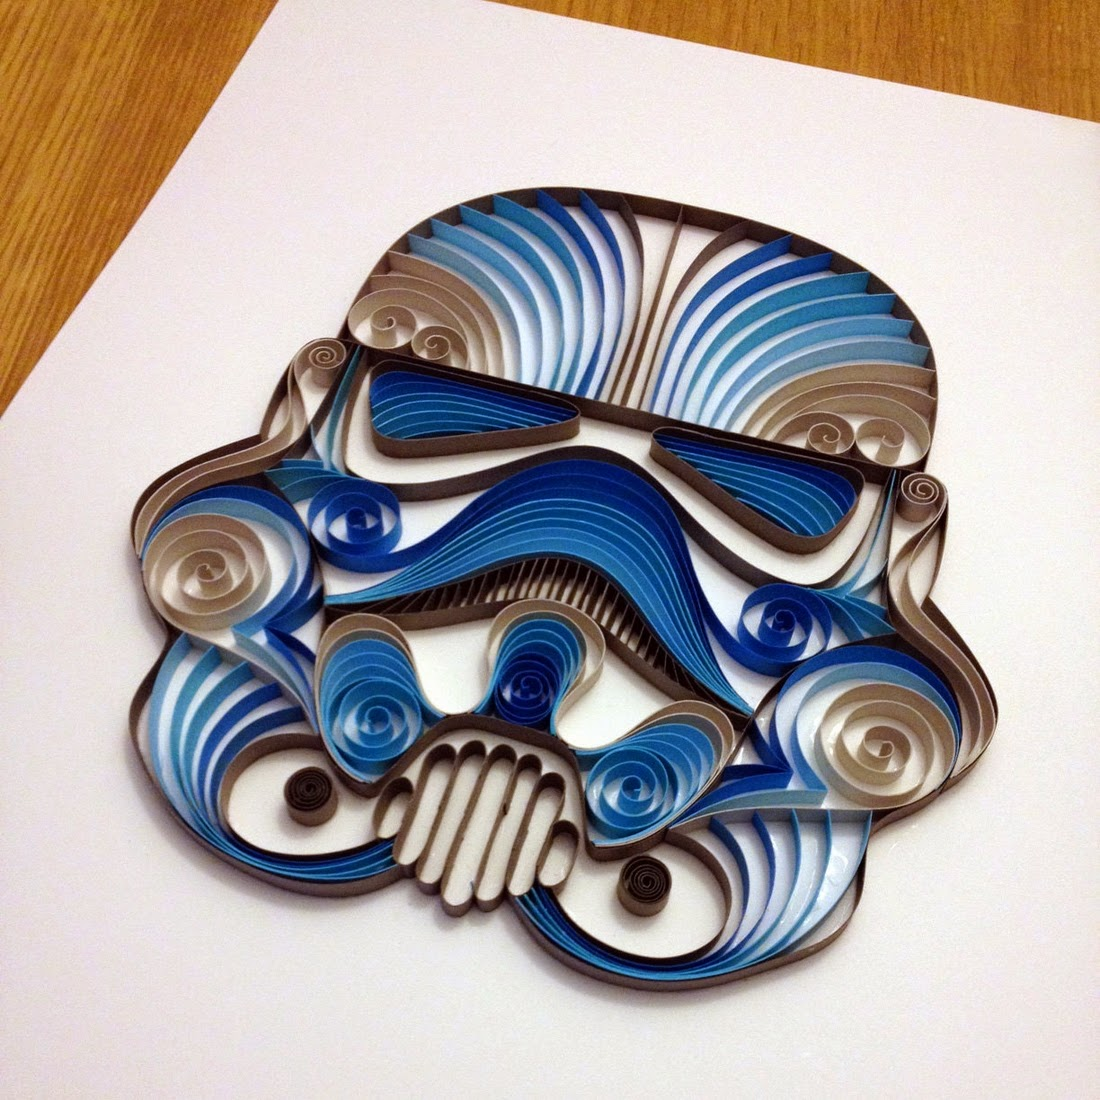 14-Storm-Trooper-Helmet-3-Alia-AliaDesign-Sci-Fi-and-Superhero-Paper-Quilling-www-designstack-co